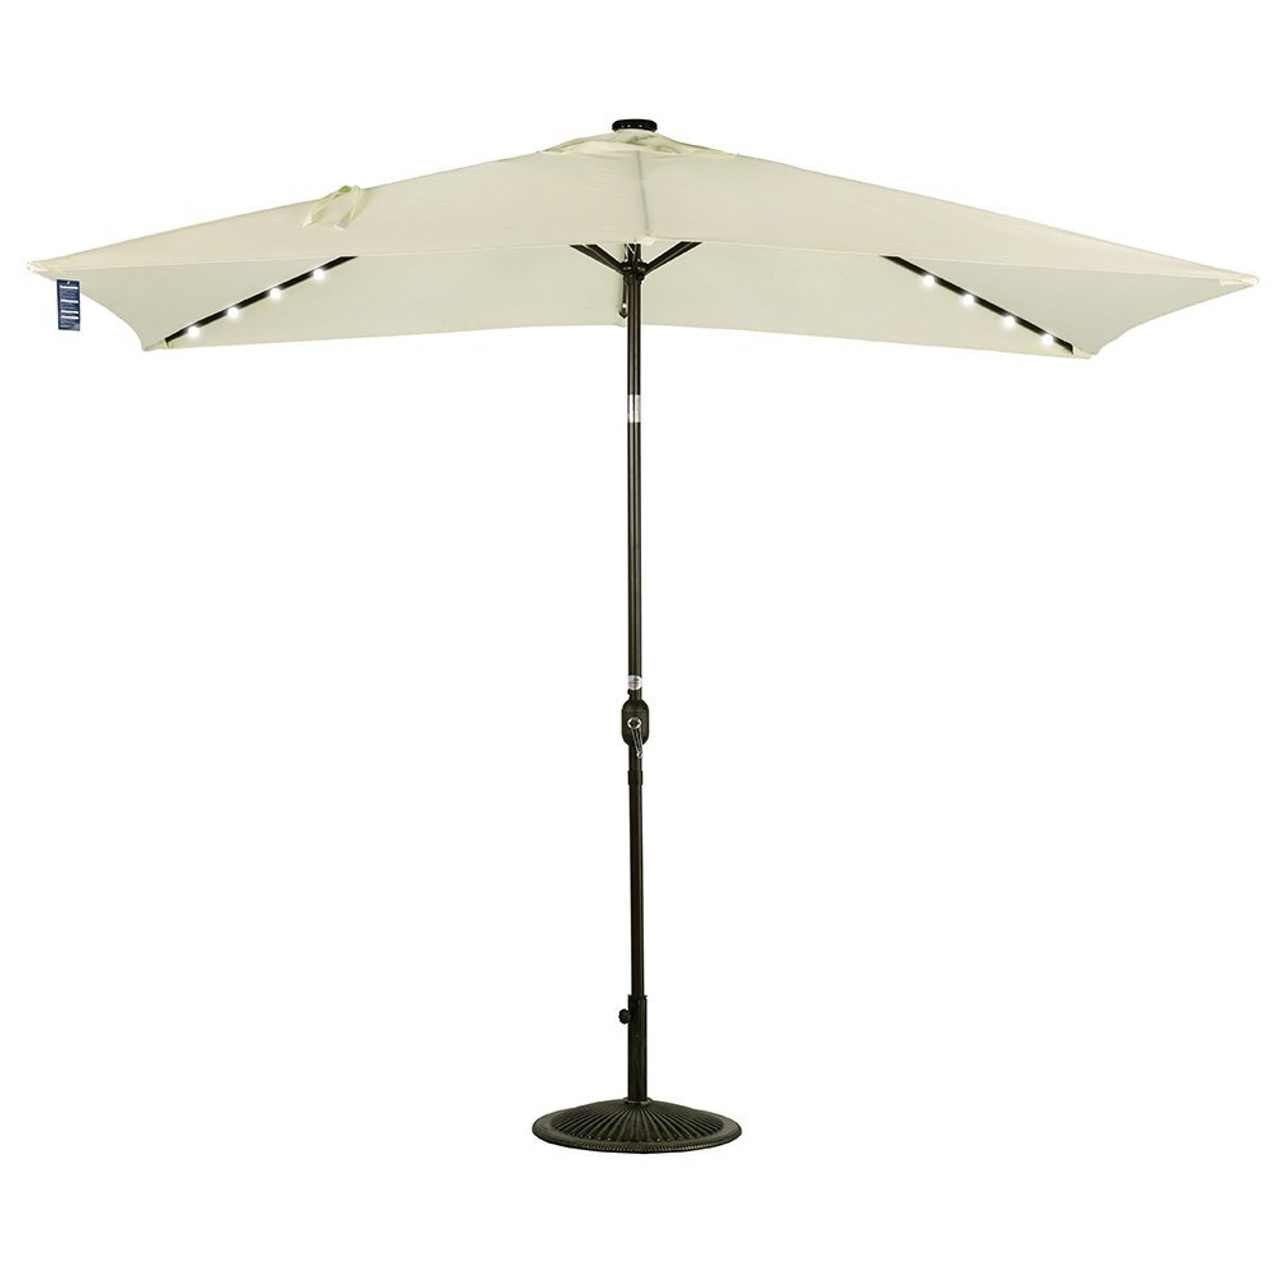 Led Umbrella Features: Rectangular Solar Powered 22 LED Lighted Outdoor Patio